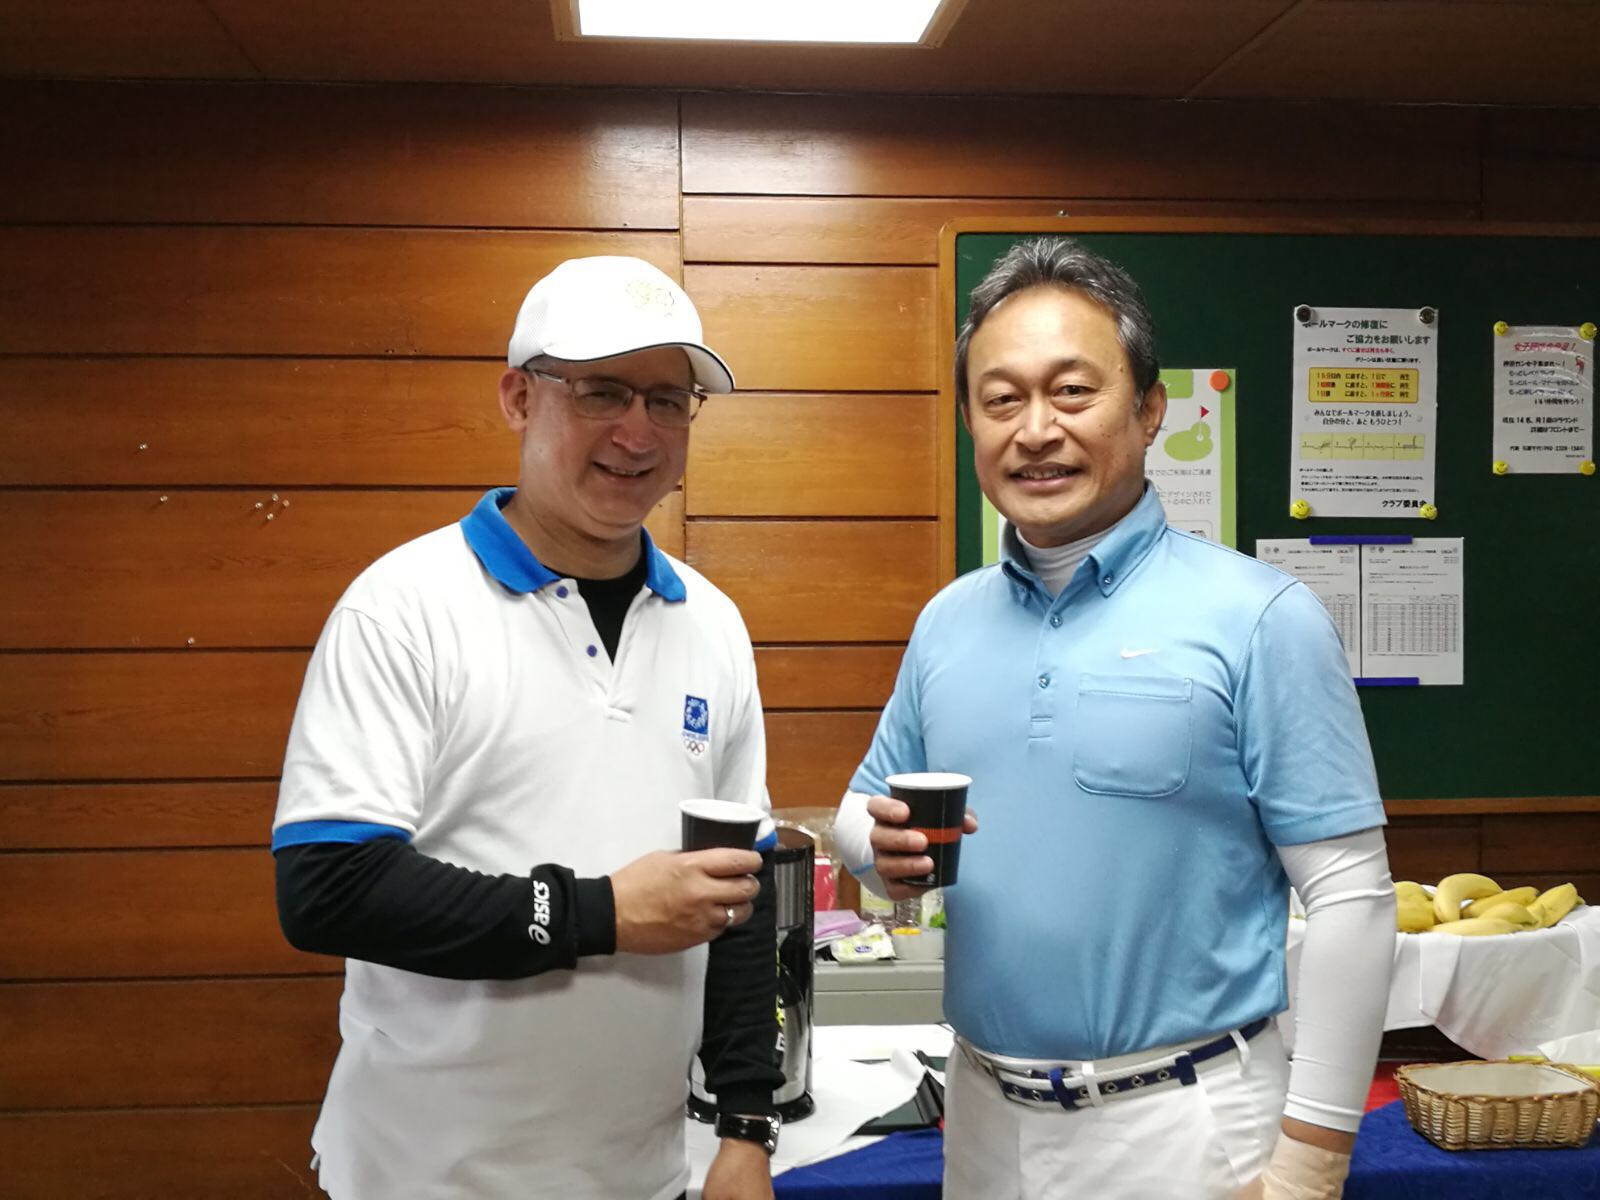 From left: H.E. Ritter N. Díaz, Ambassador of Panama to Japan, H.E. John Fritz, Ambassador of the Federated States of Micronesia and President of the Association of Ambassados Golfers of Japan